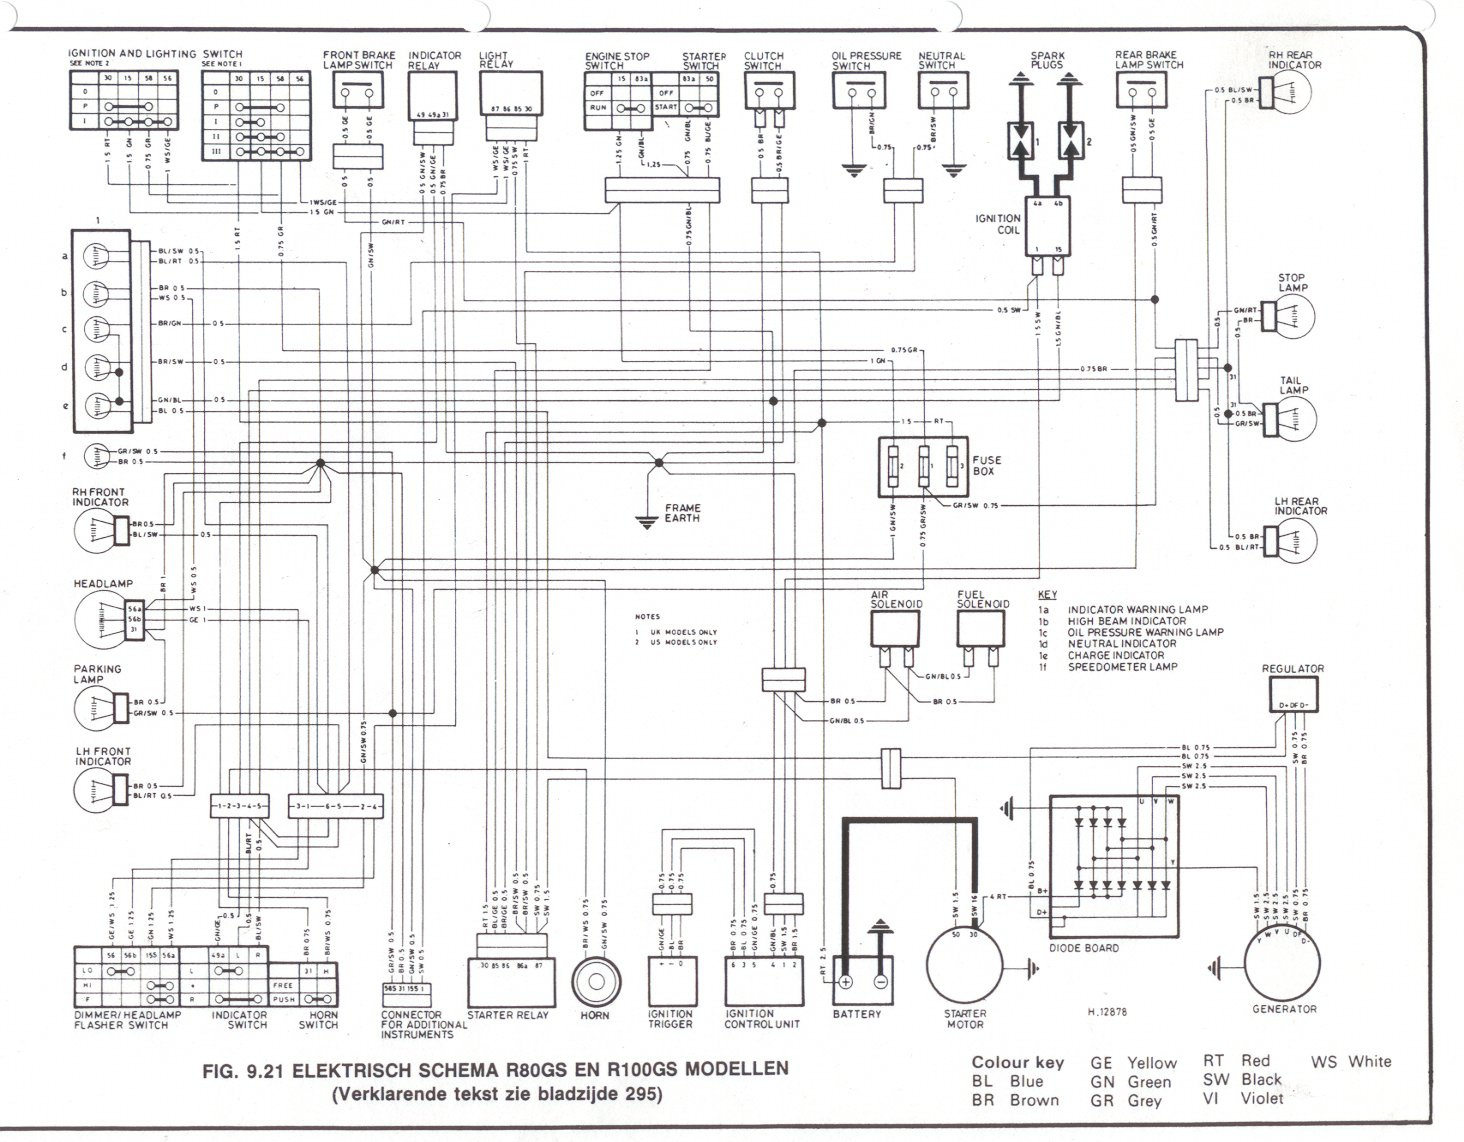 mopar electronic ignition wiring diagram mopar discover your r80 wiring diagram electronic ignition